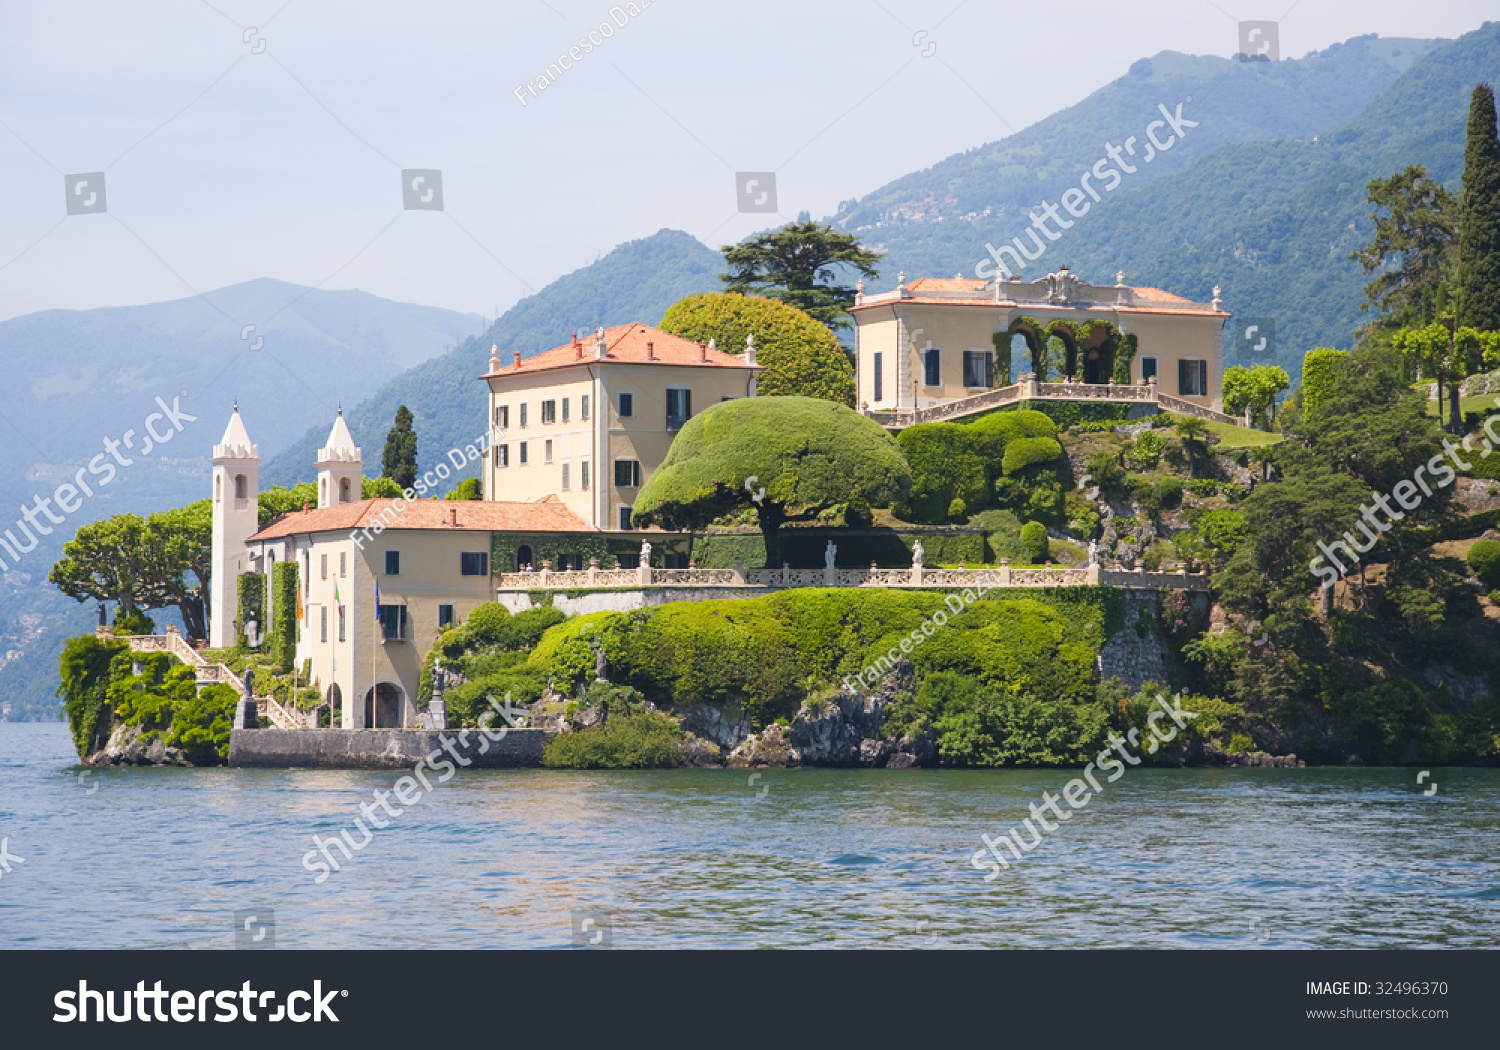 italy villa balbianello coast - photo #9